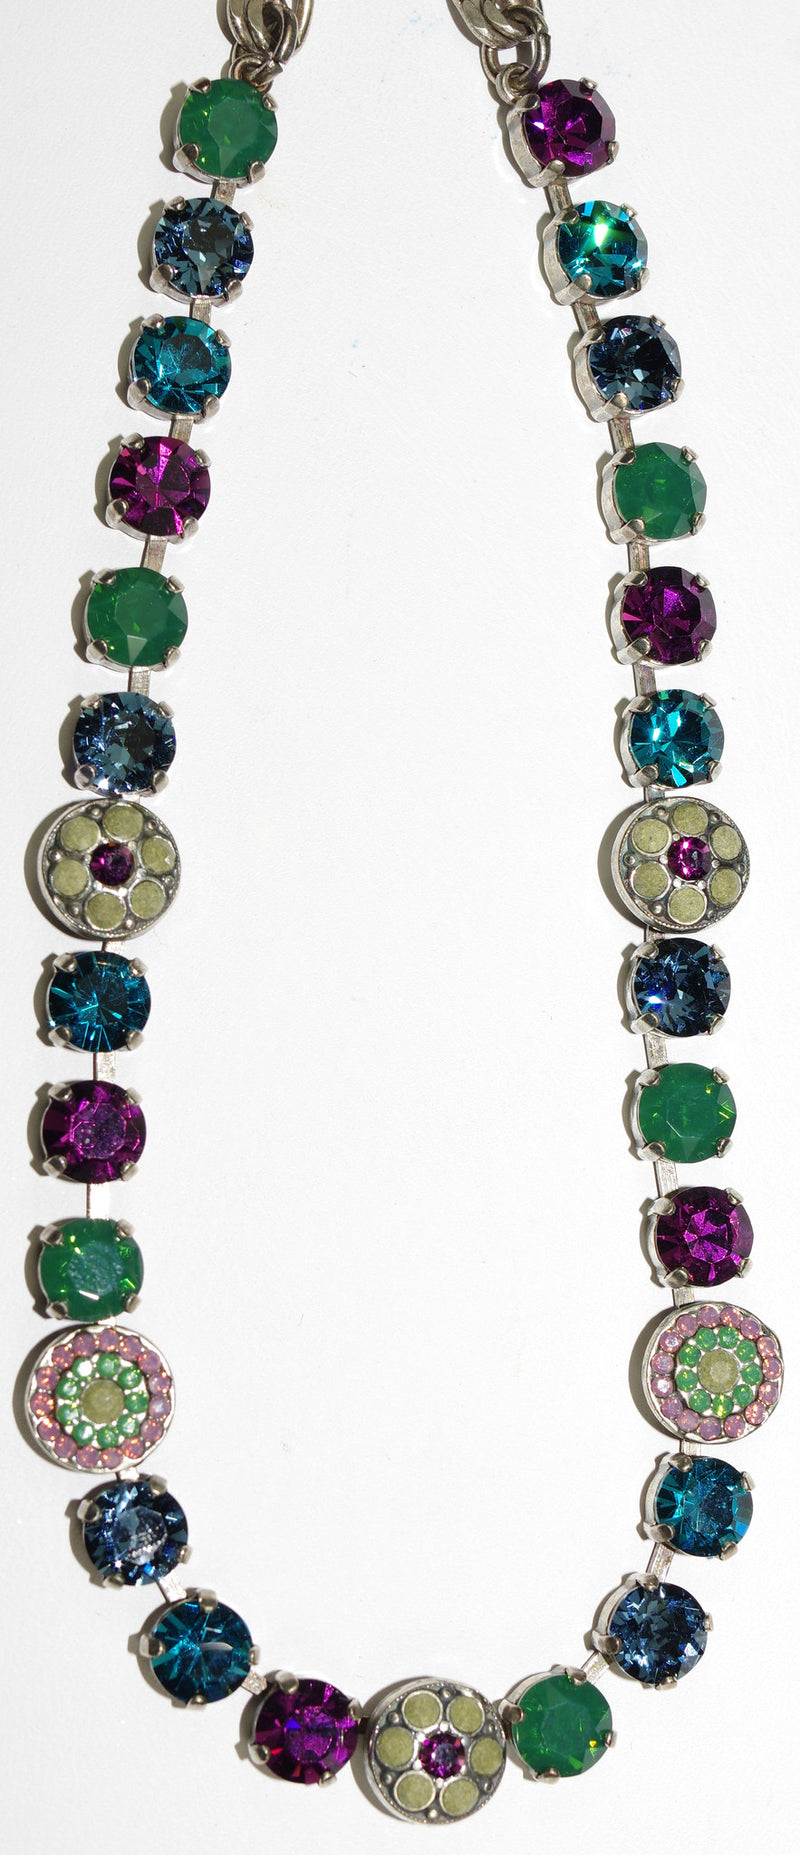 "MARIANA NECKLACE PATIENCE: green, teal, purple, grey stones in silver setting, 18"" adjustable chain"